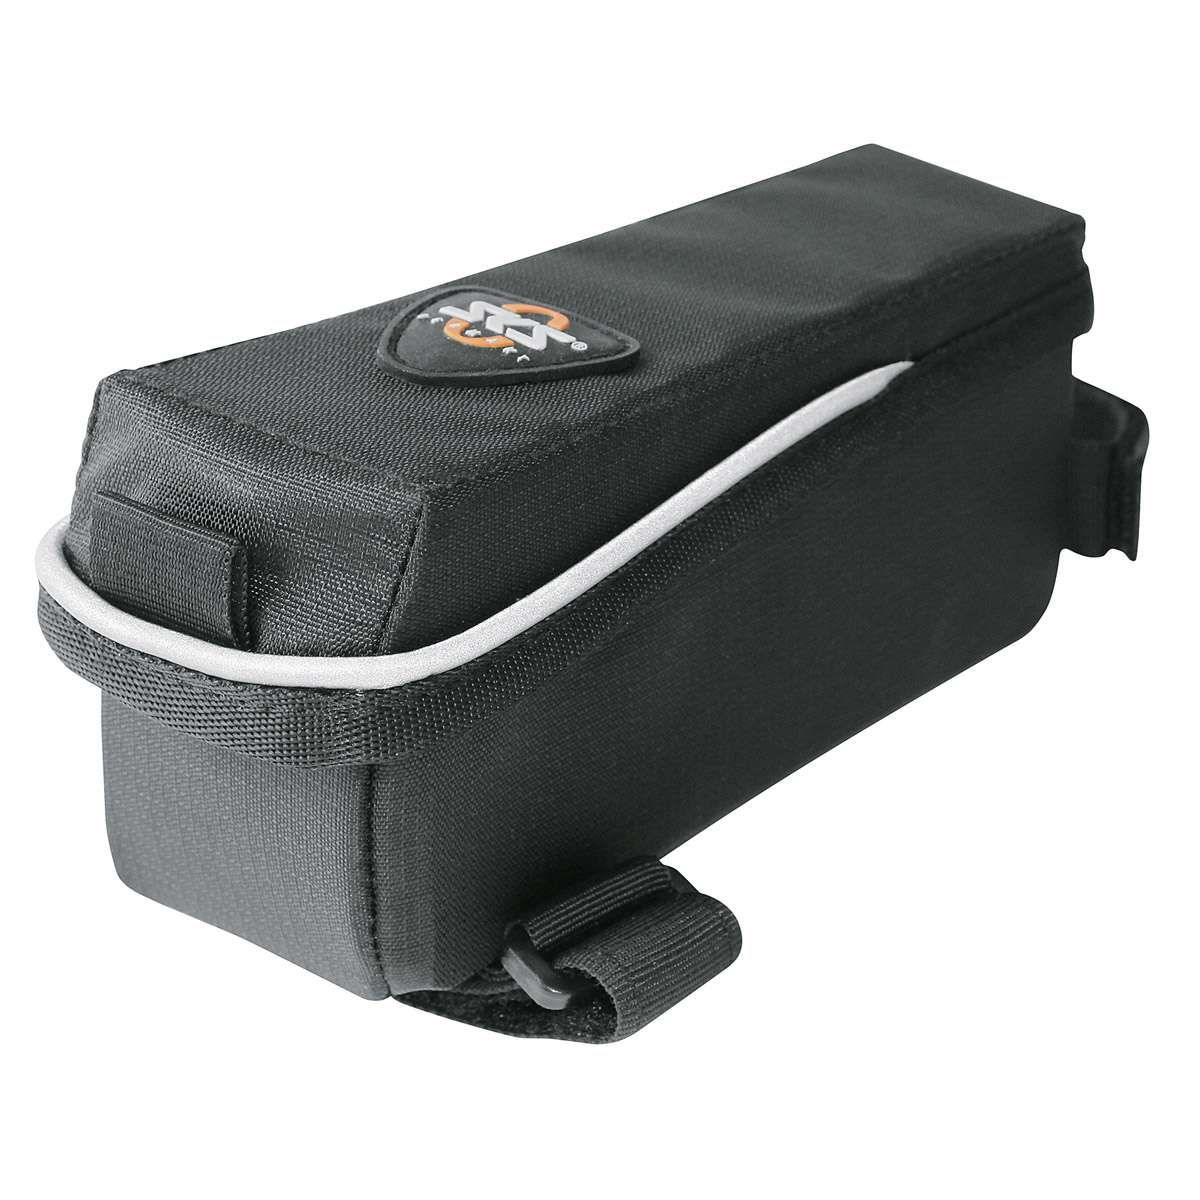 Аксессуар SKS Energy Bag (SKS-11106) аксессуар sks velo 65 mountain 29 set incl u stays sks 11471